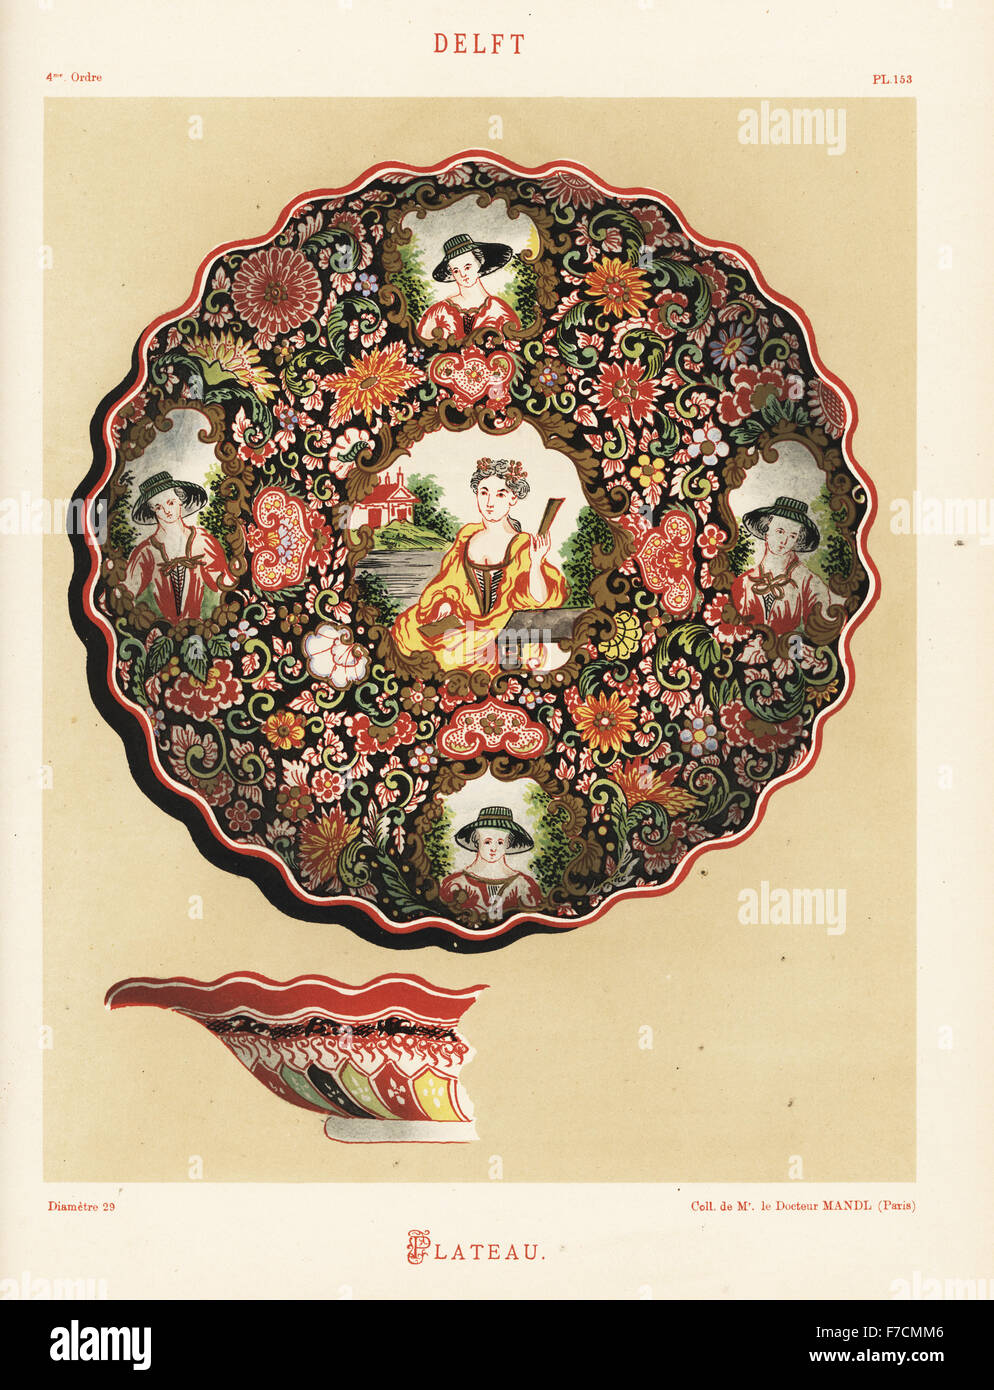 Platter from Delft, Netherlands, 18th century, with portraits of women within a floral pattern. Hand-finished chromolithograph - Stock Image